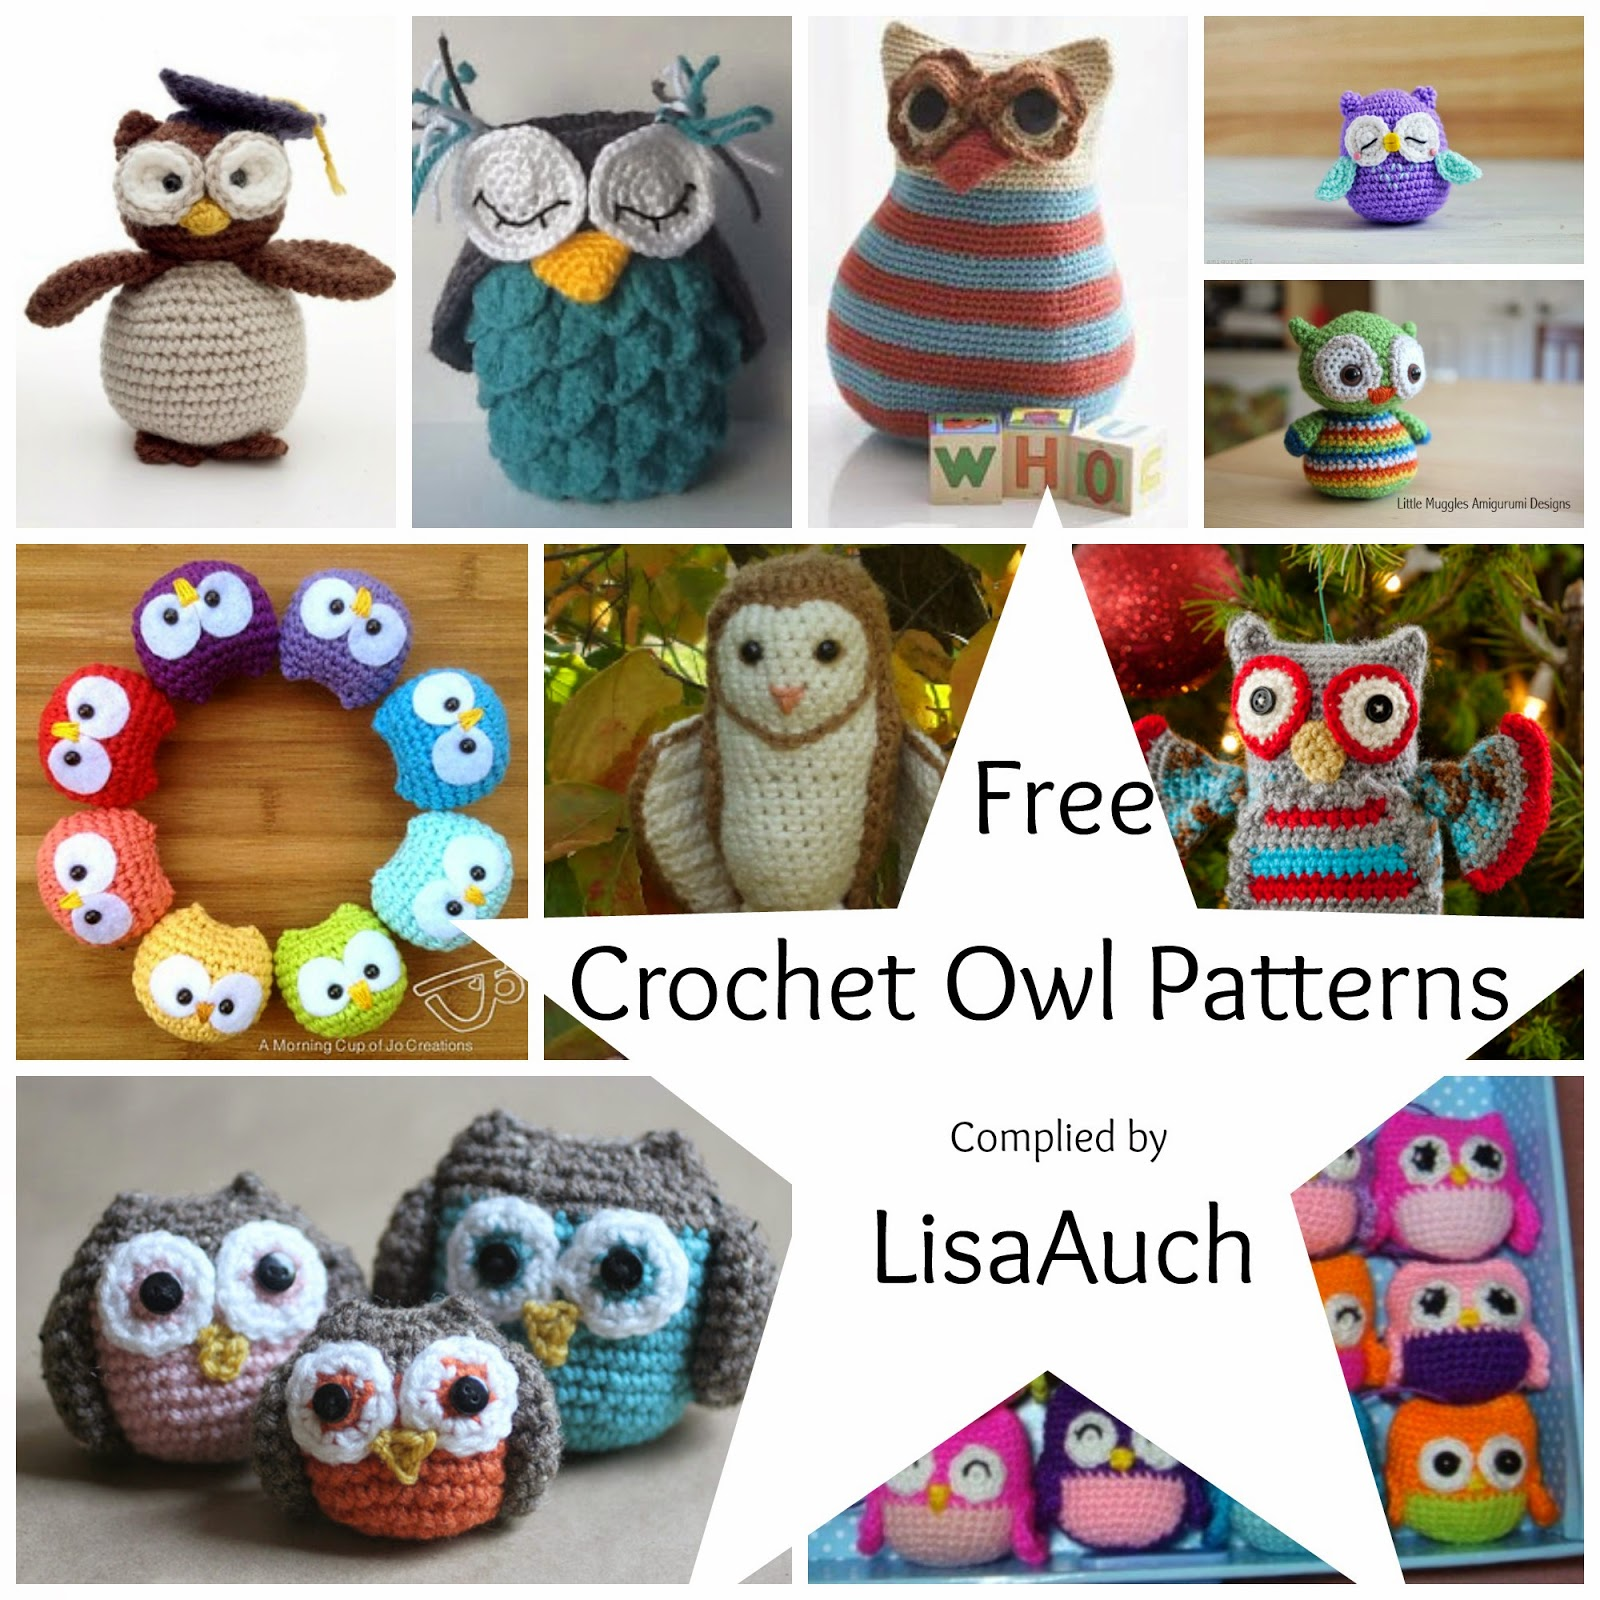 Free Crochet Pattern Owl Family : Free Crochet Owl Patterns FREE Crochet Patterns Bloglovin